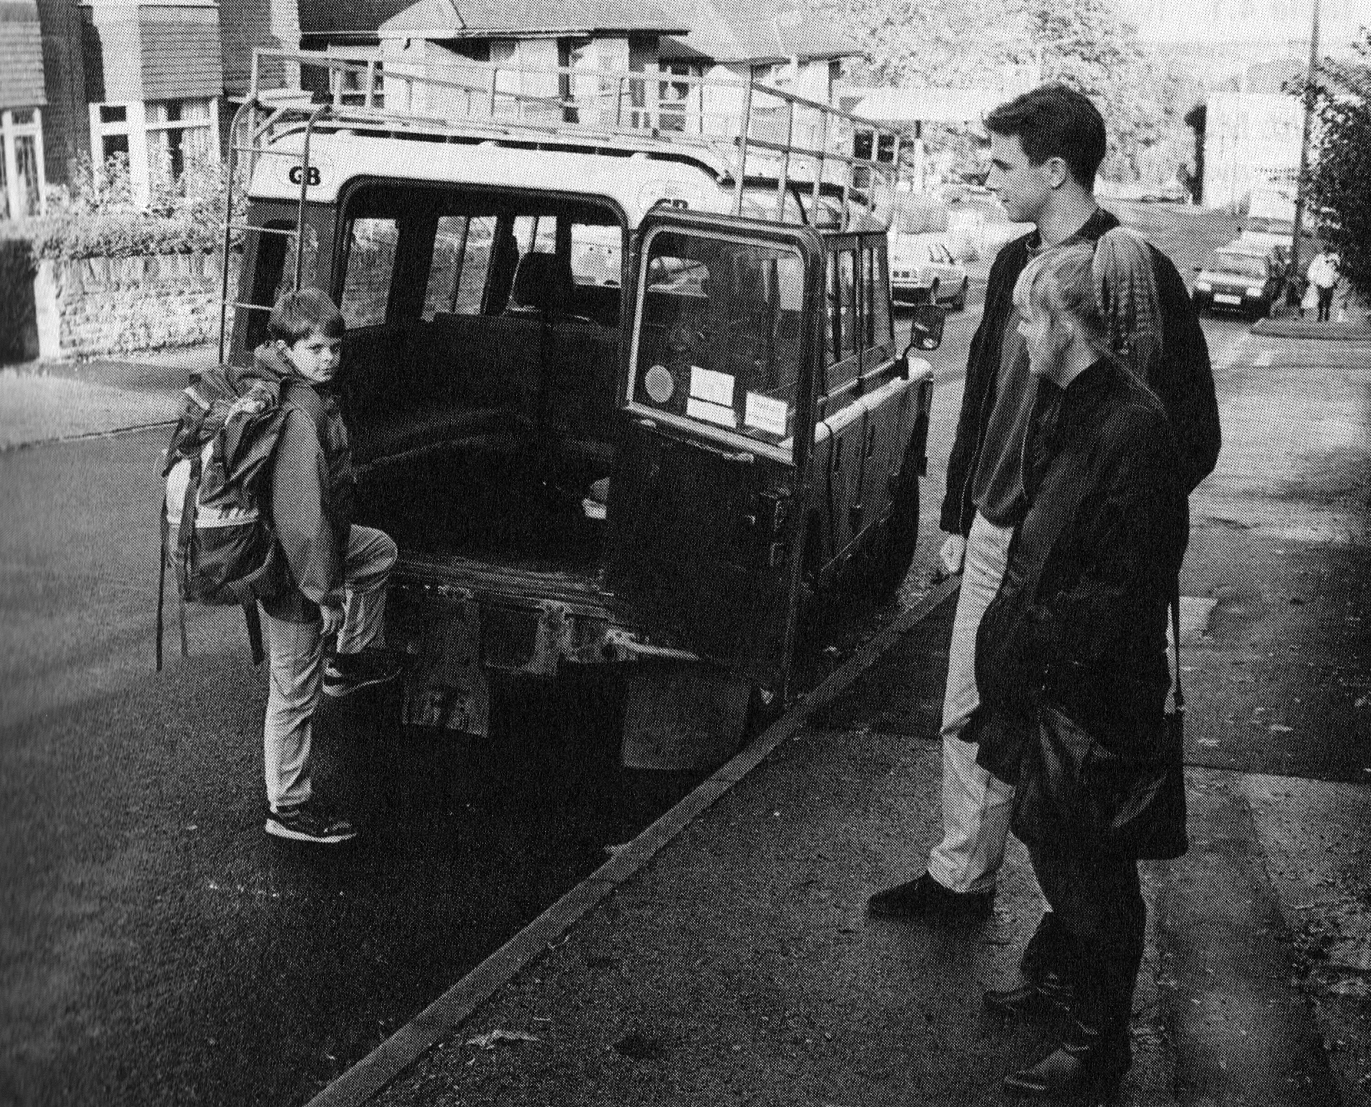 PF - Boy by Land Rover - from Separation Anxiety Test